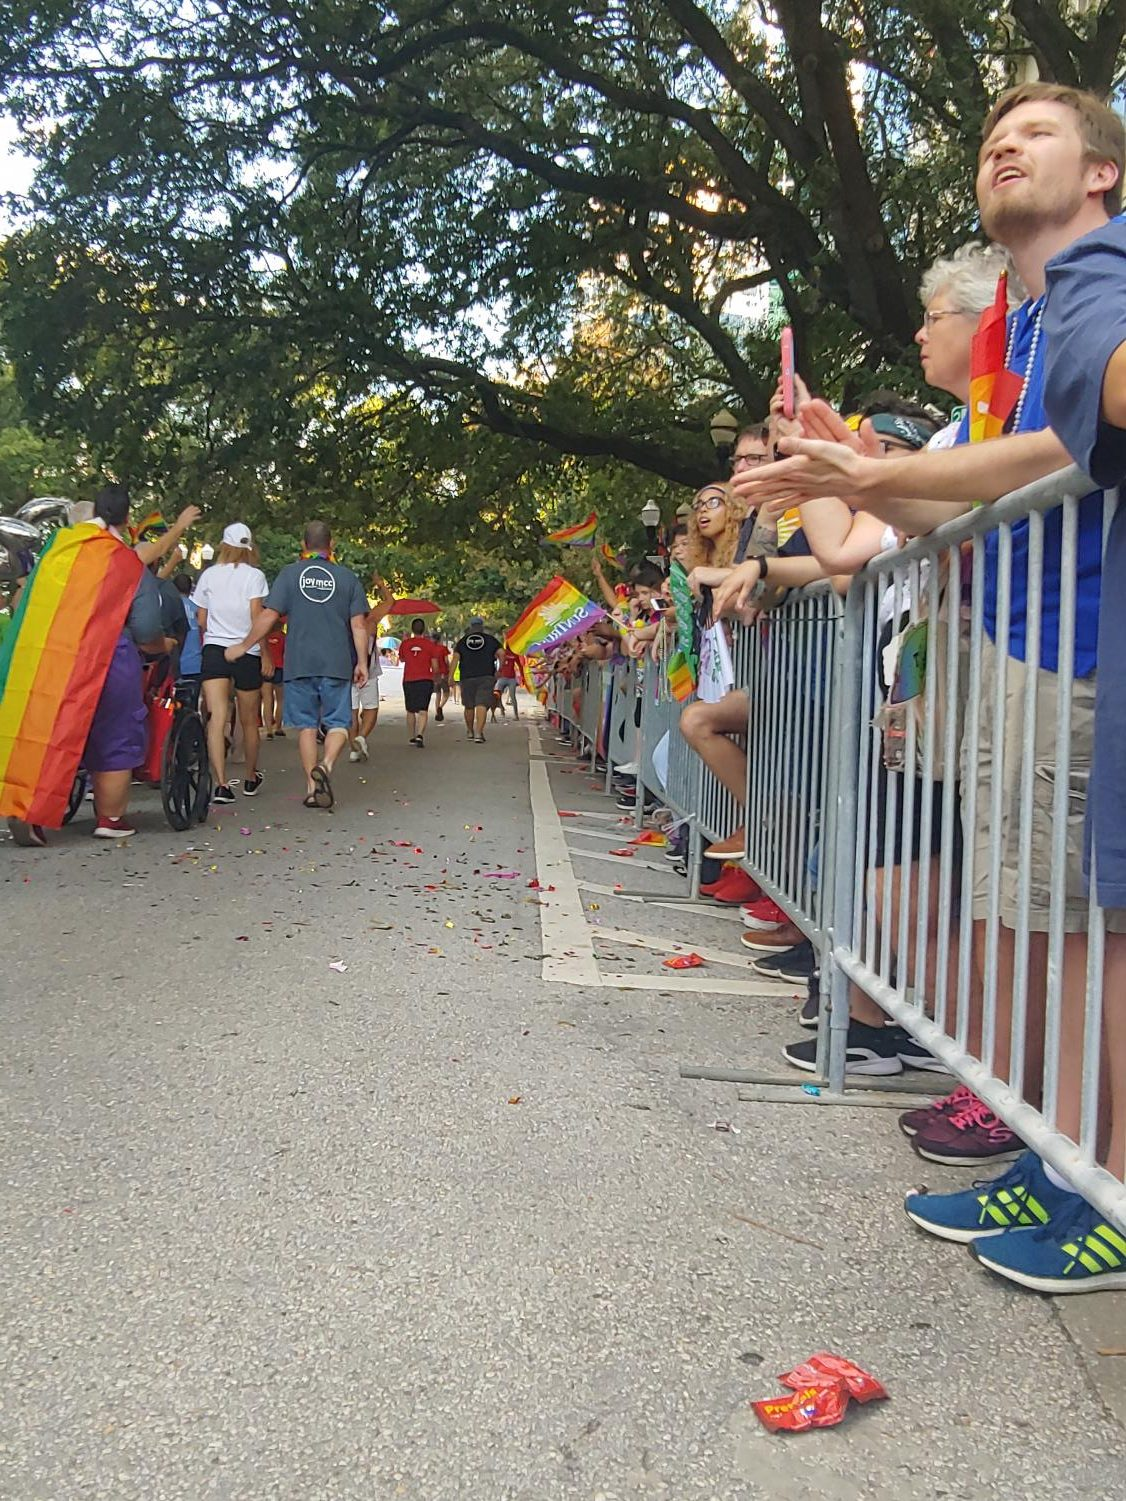 Orlando's Come Out With Pride Festival takes place every October.